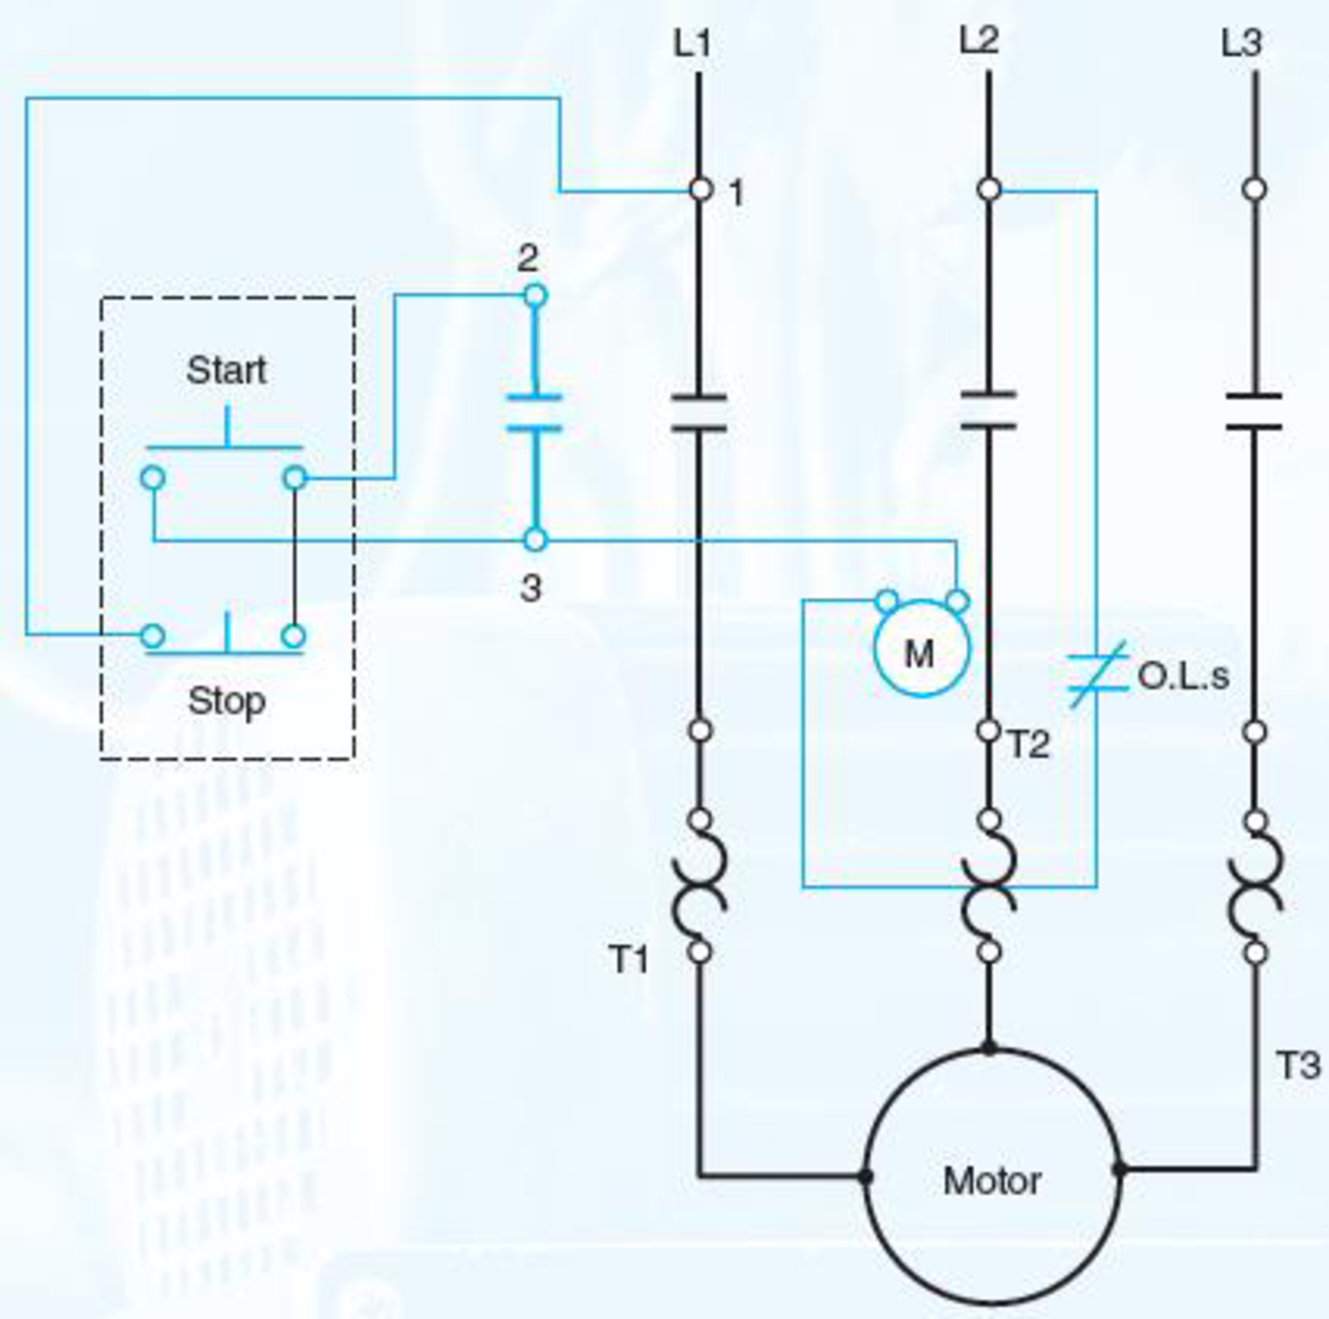 Draw an elementary line diagram of the control circuit from the wiring  diagram shown in Figure 5–20. Exclude power or motor circuit wiring. FIG.  5–20 | bartlebyBartleby.com